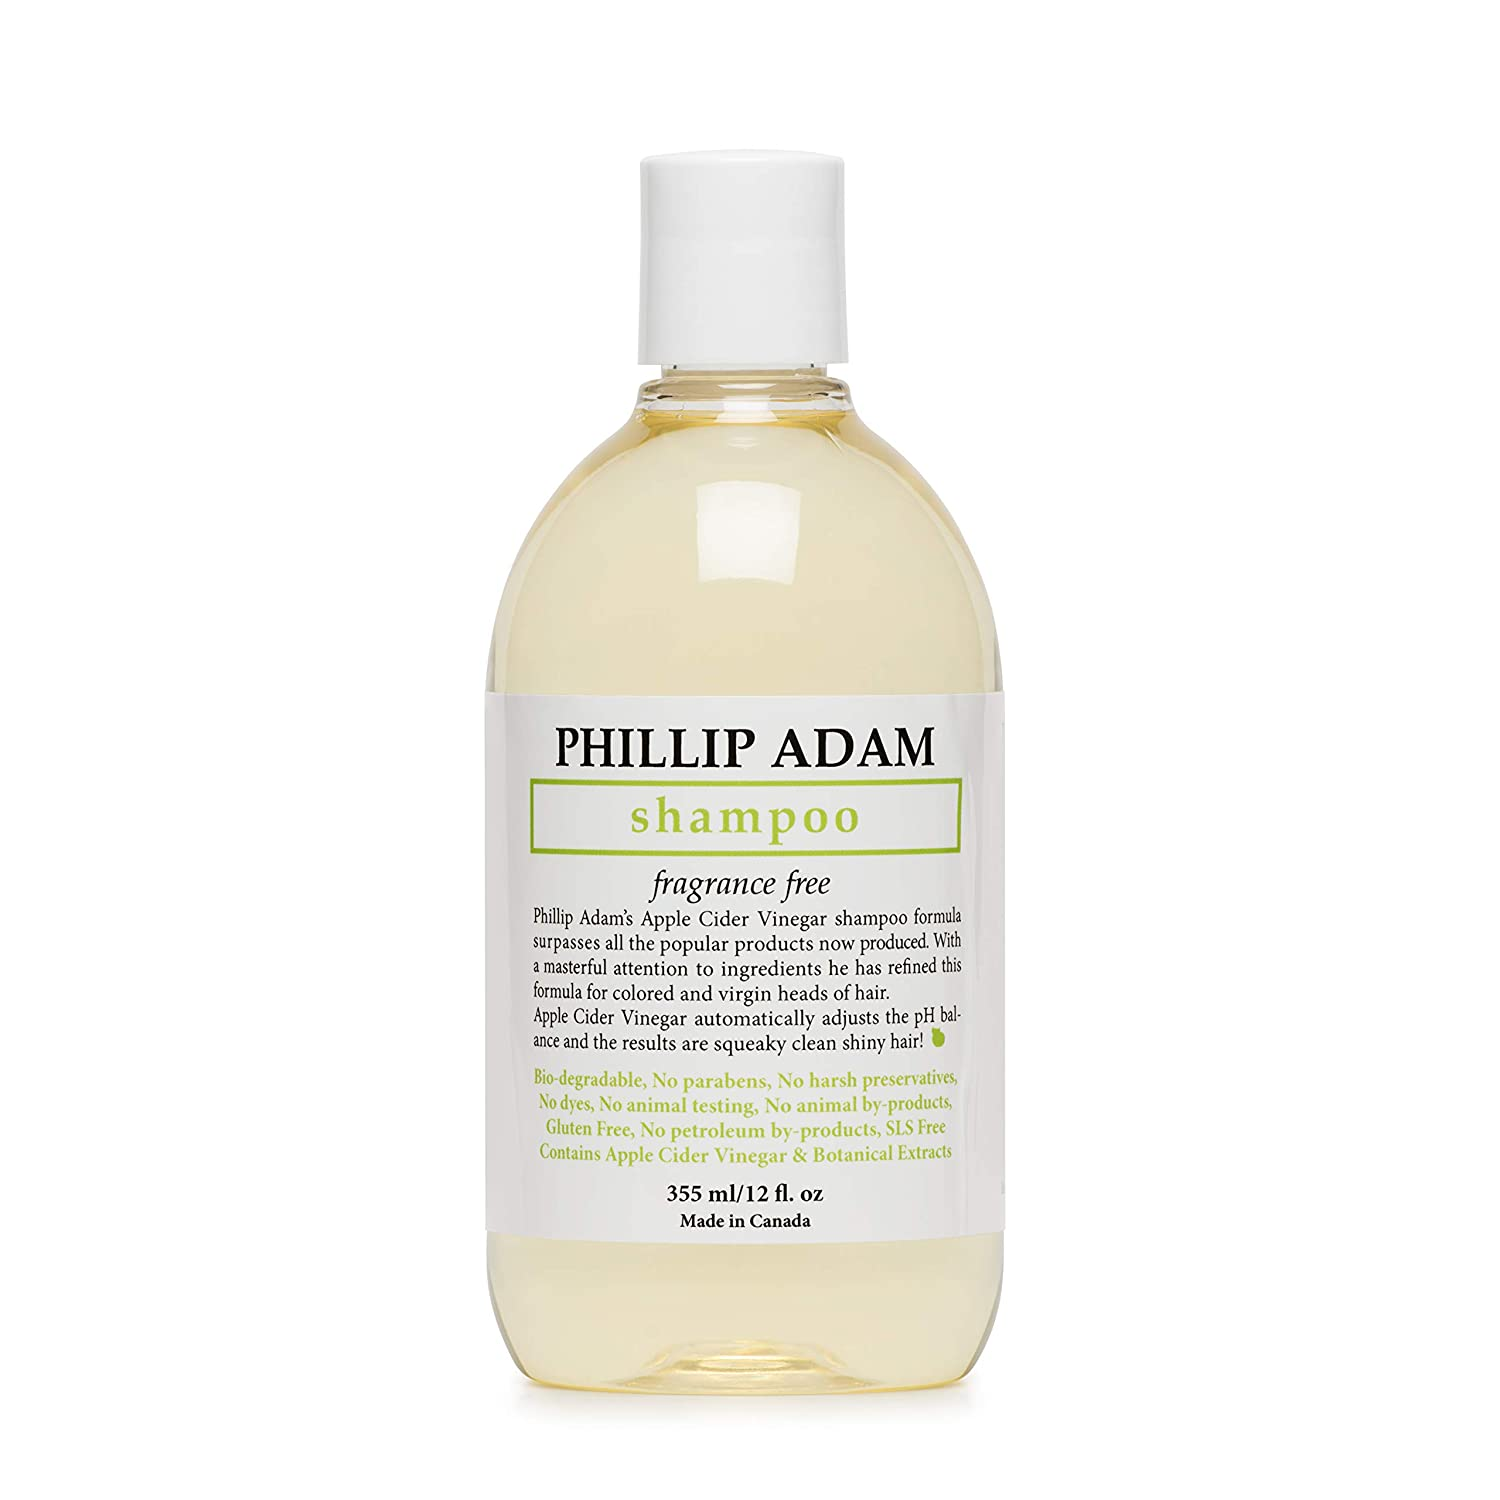 Phillip Adam San Diego Mall Fragrance Free Shampoo F - Sulfate and Paraben New color